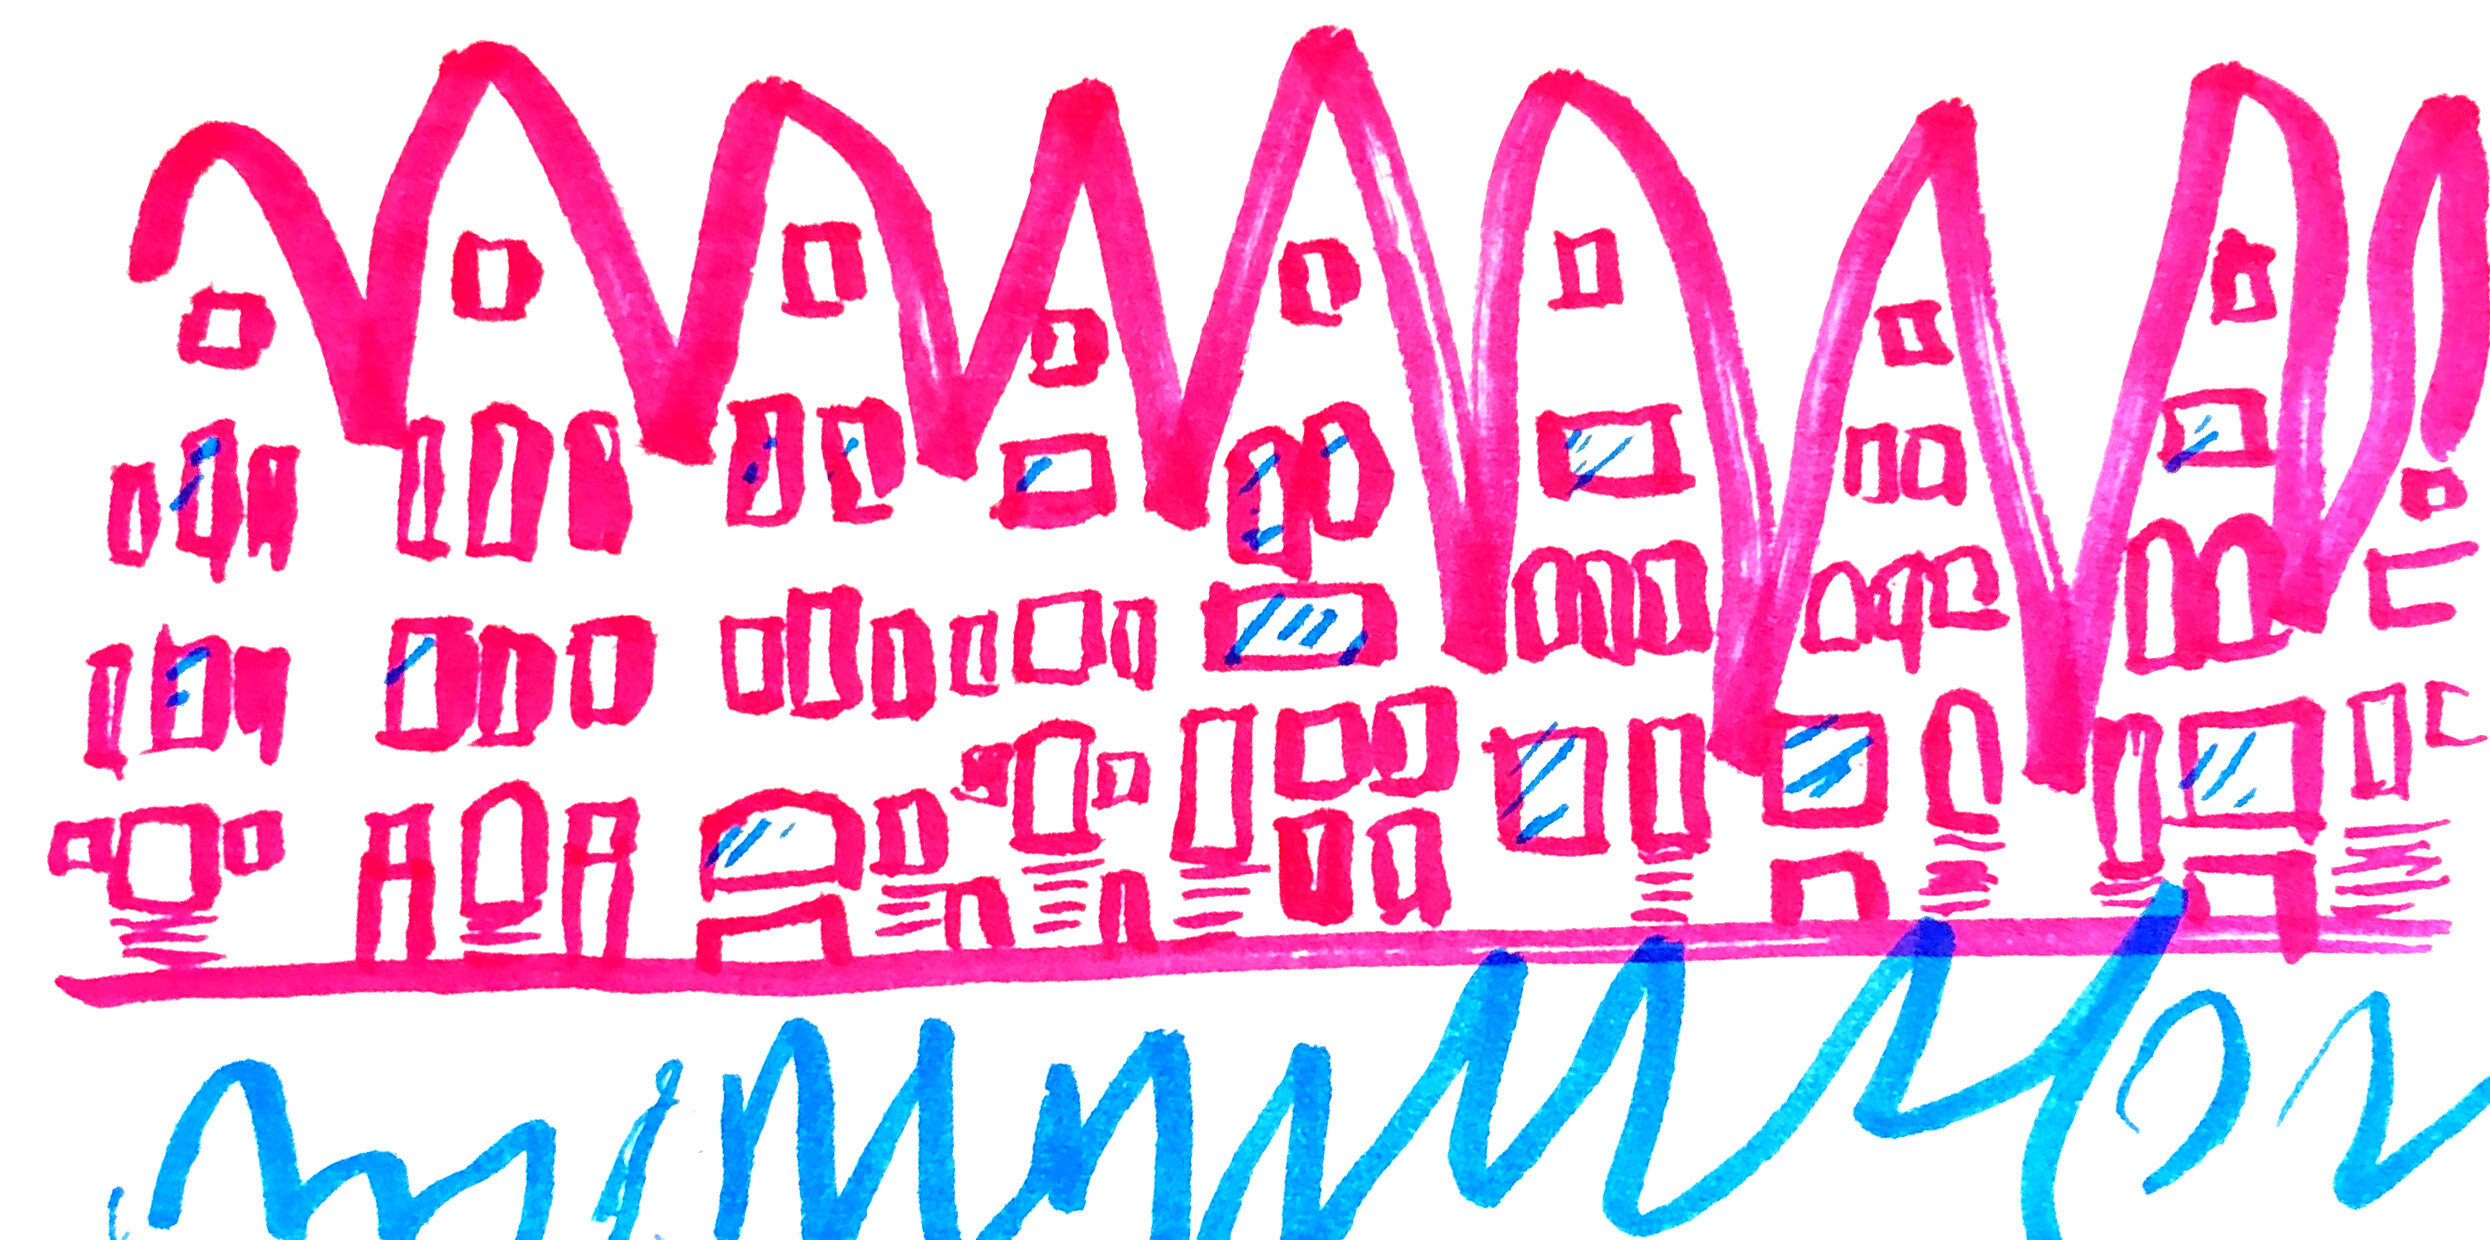 My daughter's name begins with an 'M' so as she is learning to write, naturally it is her favorite letter. She likes to sign things with a sequence of 'MMMMMMM' to which I saw a row of houses and a canal while we were on vacation in Amsterdam.